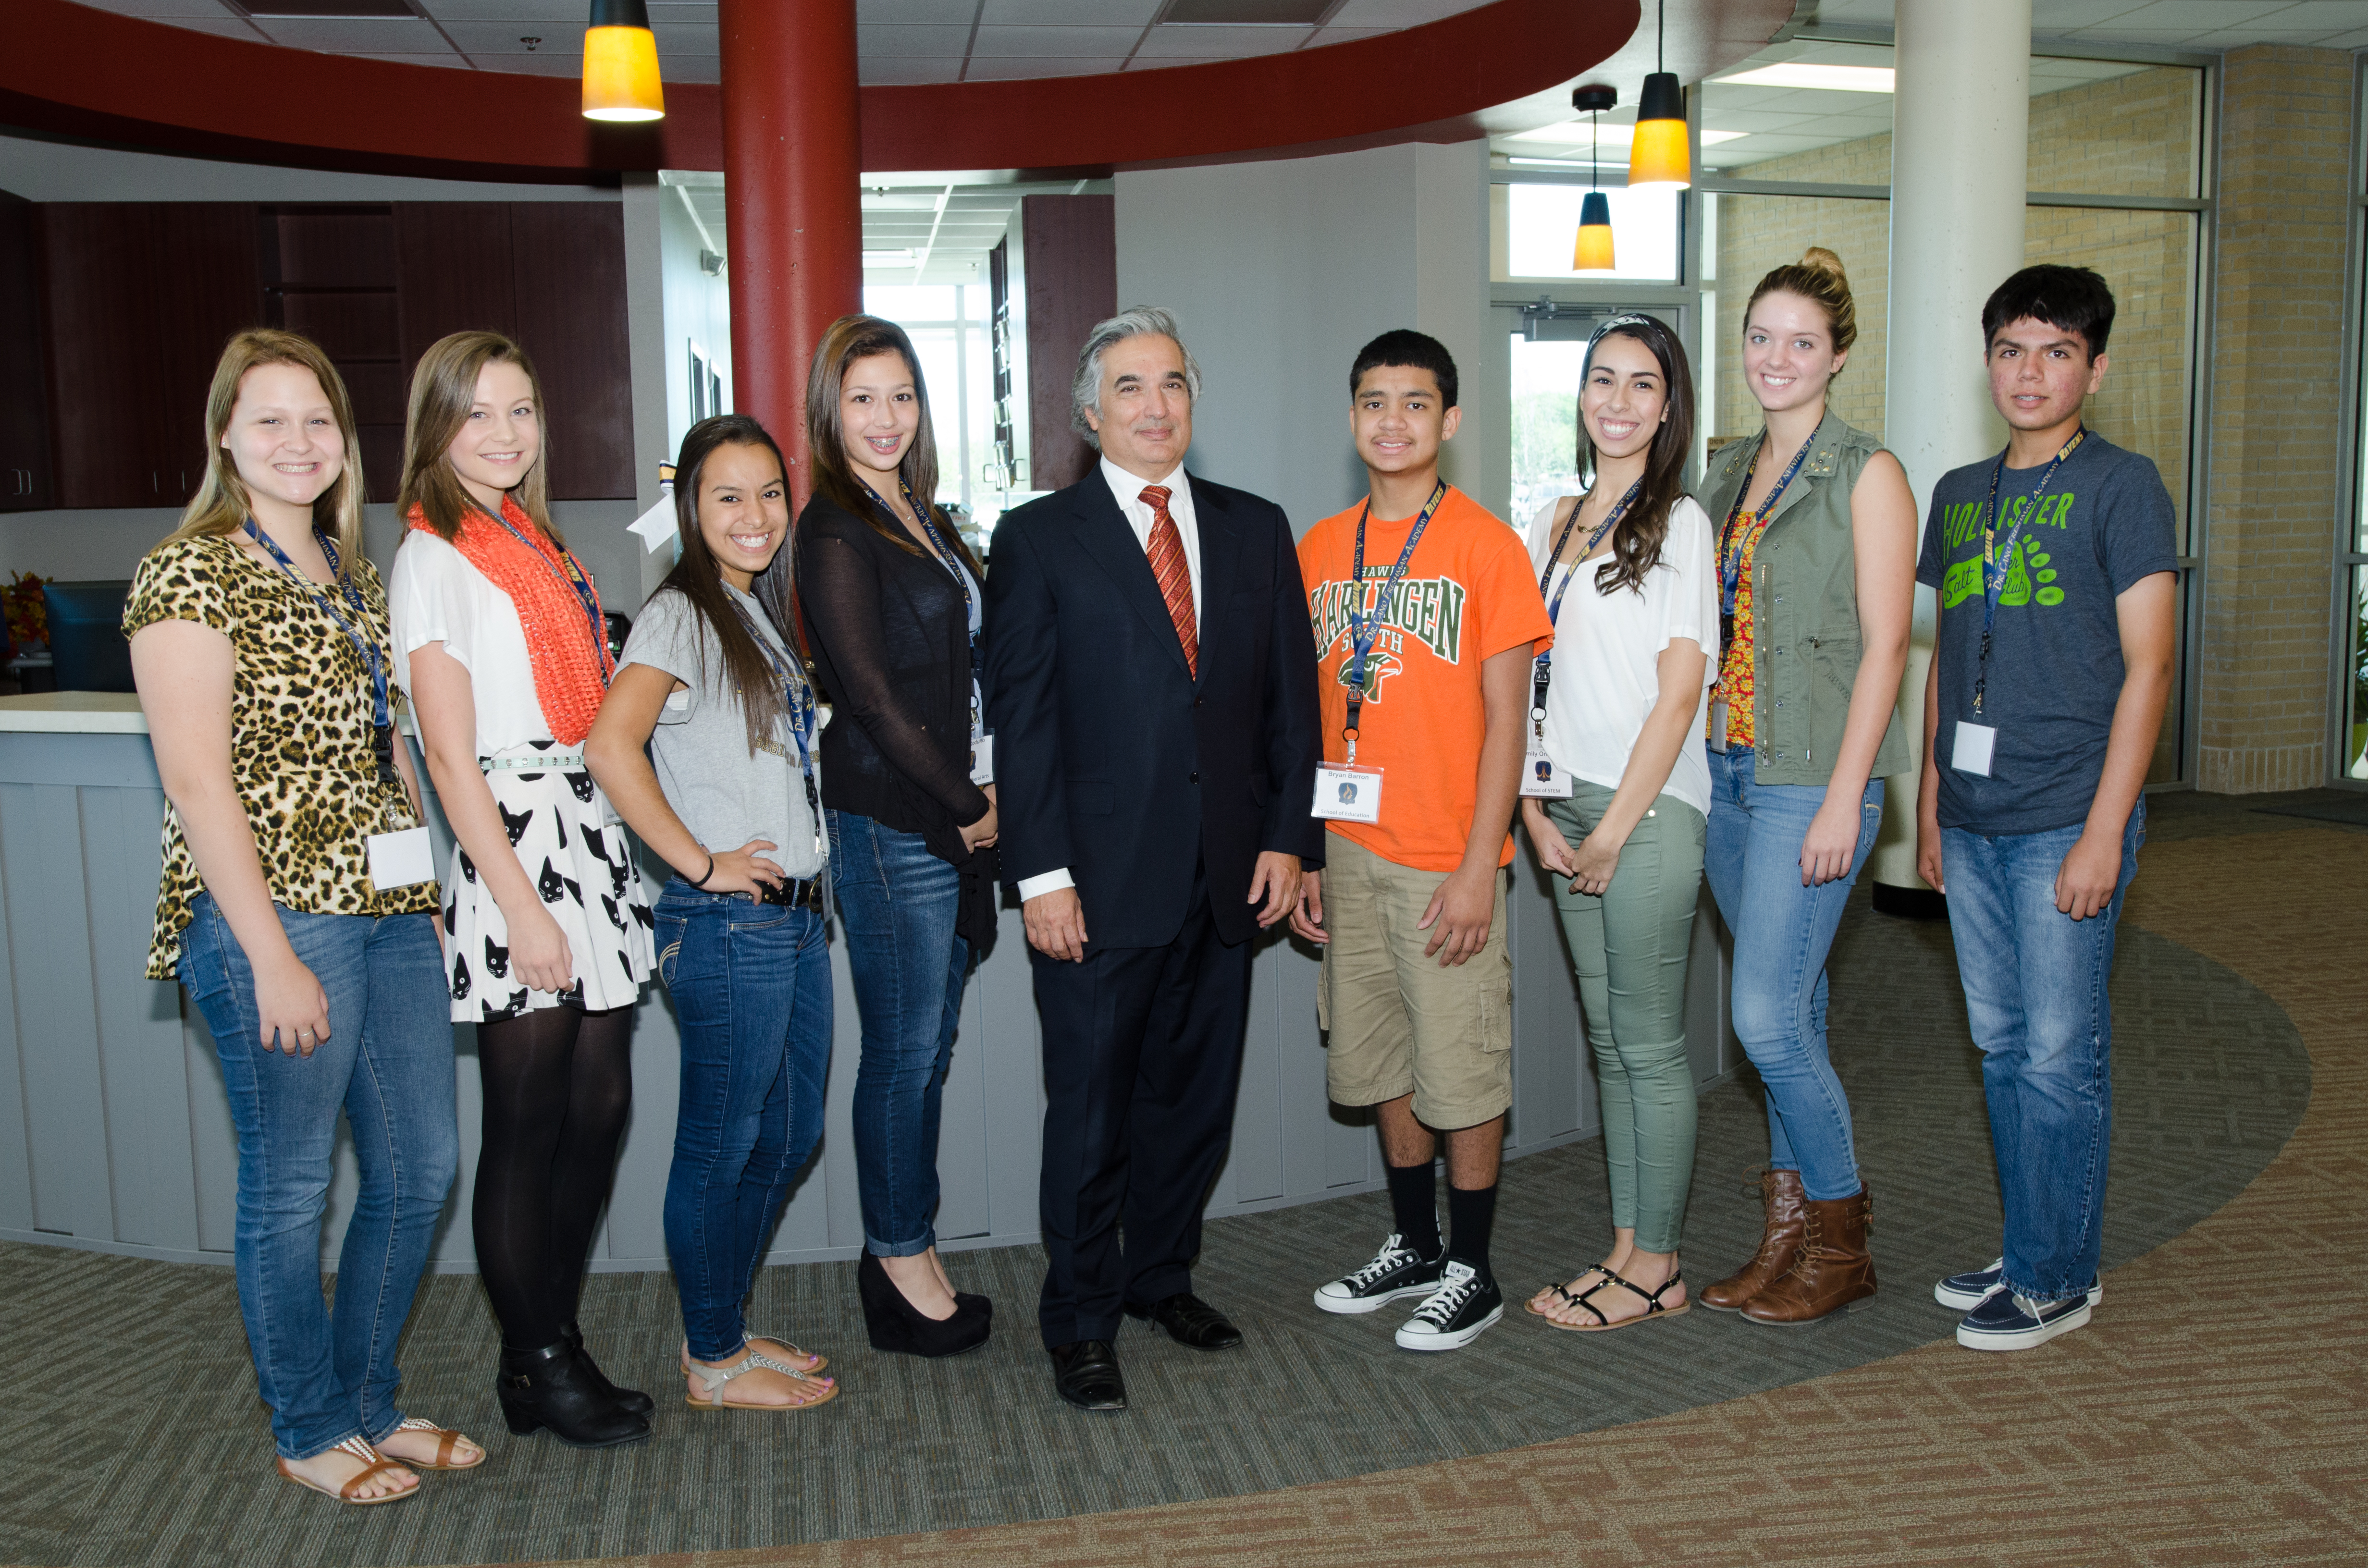 UT Chancellor visits with students about the future of education